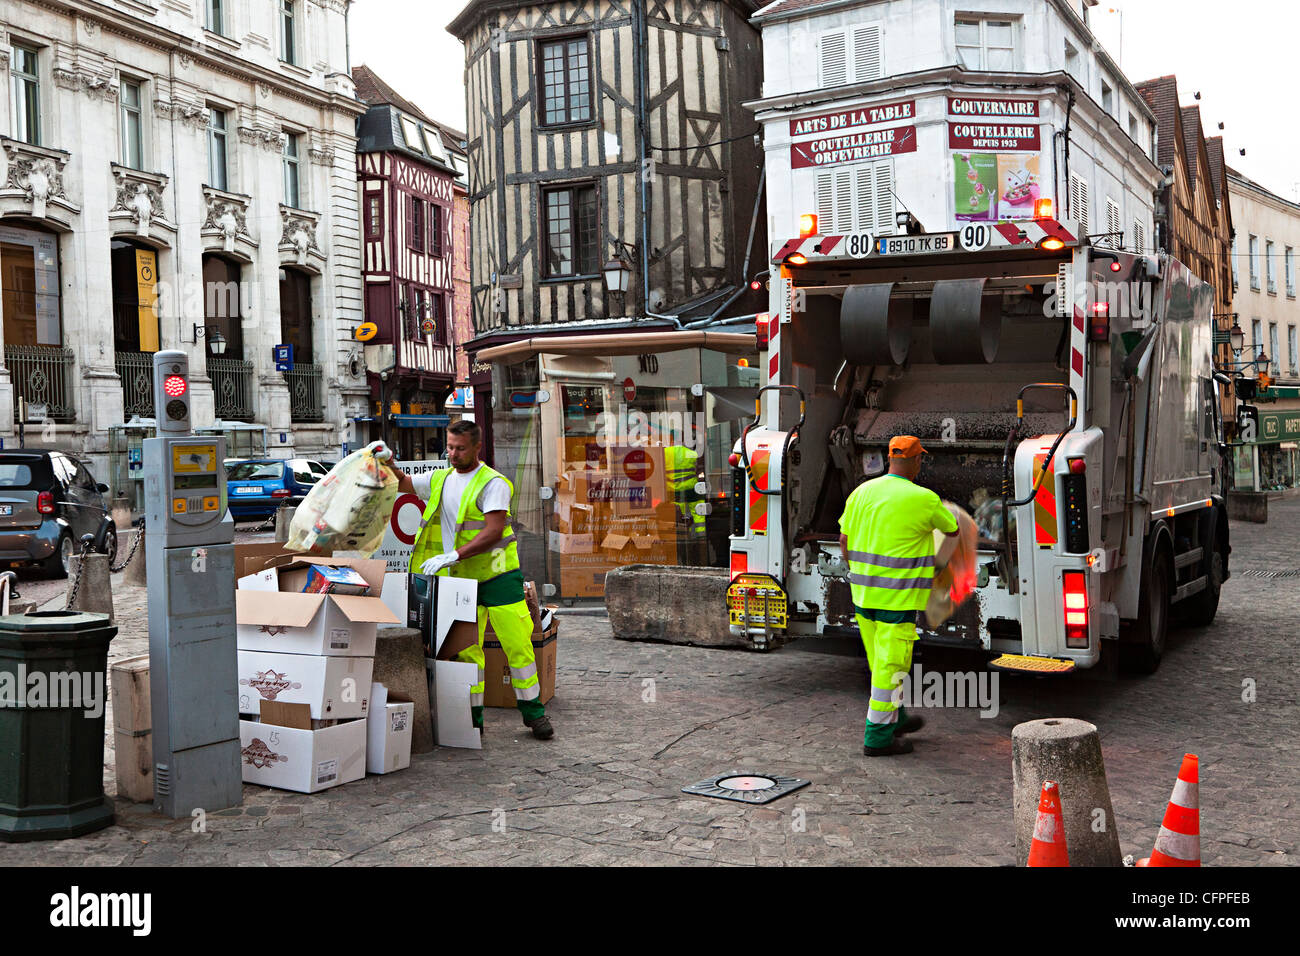 Refuse workers collecting waste in street, Auxerre, Burgundy, France - Stock Image